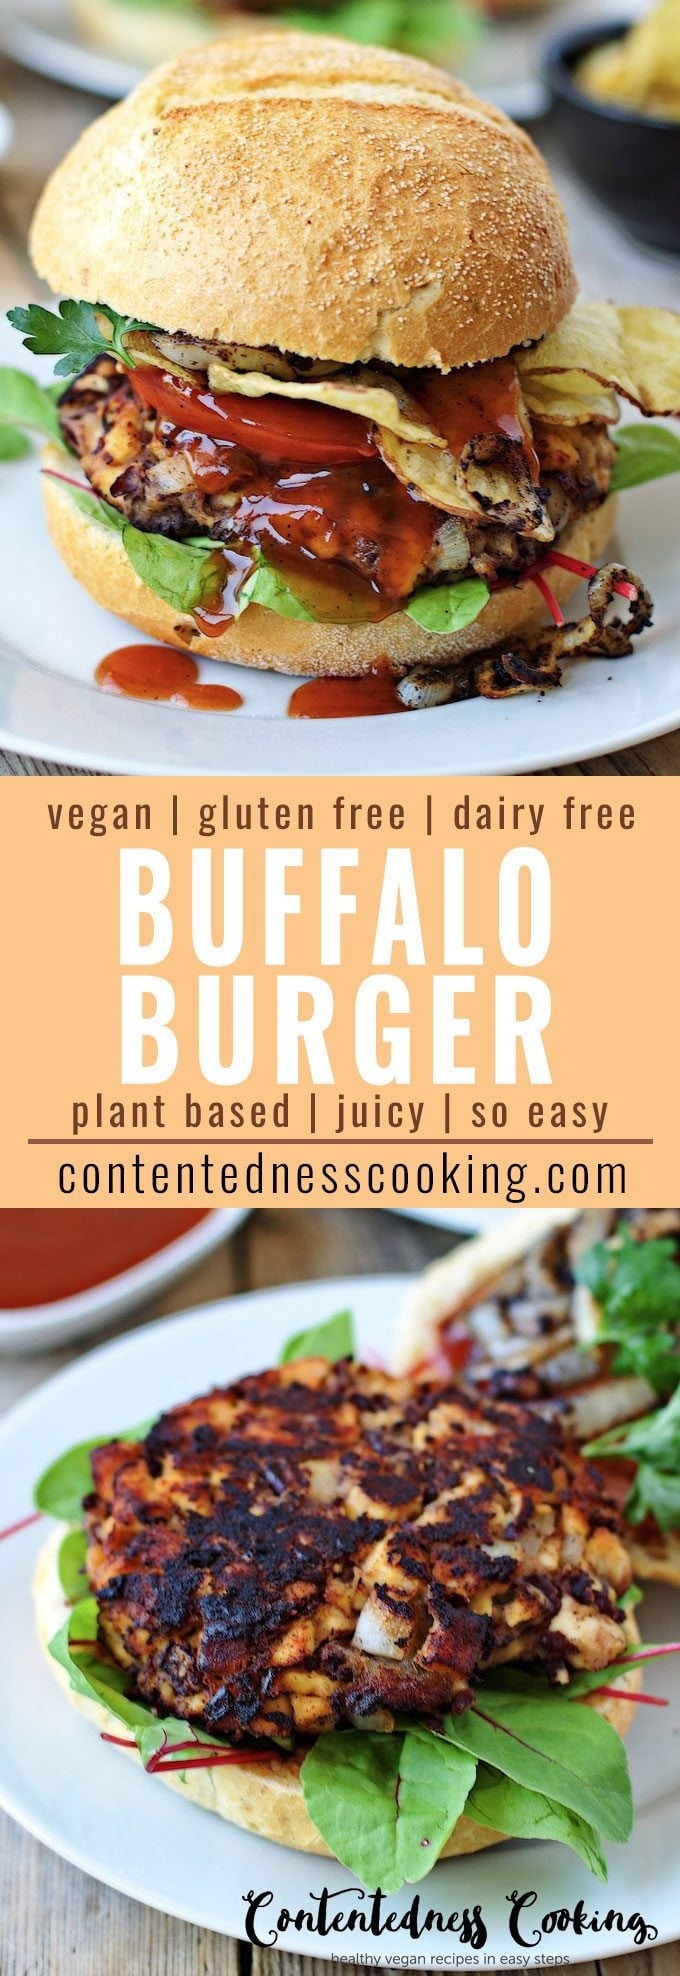 Vegan Buffalo Burger | #vegan #glutenfree #dairyfree #plantbased #contentednesscooking